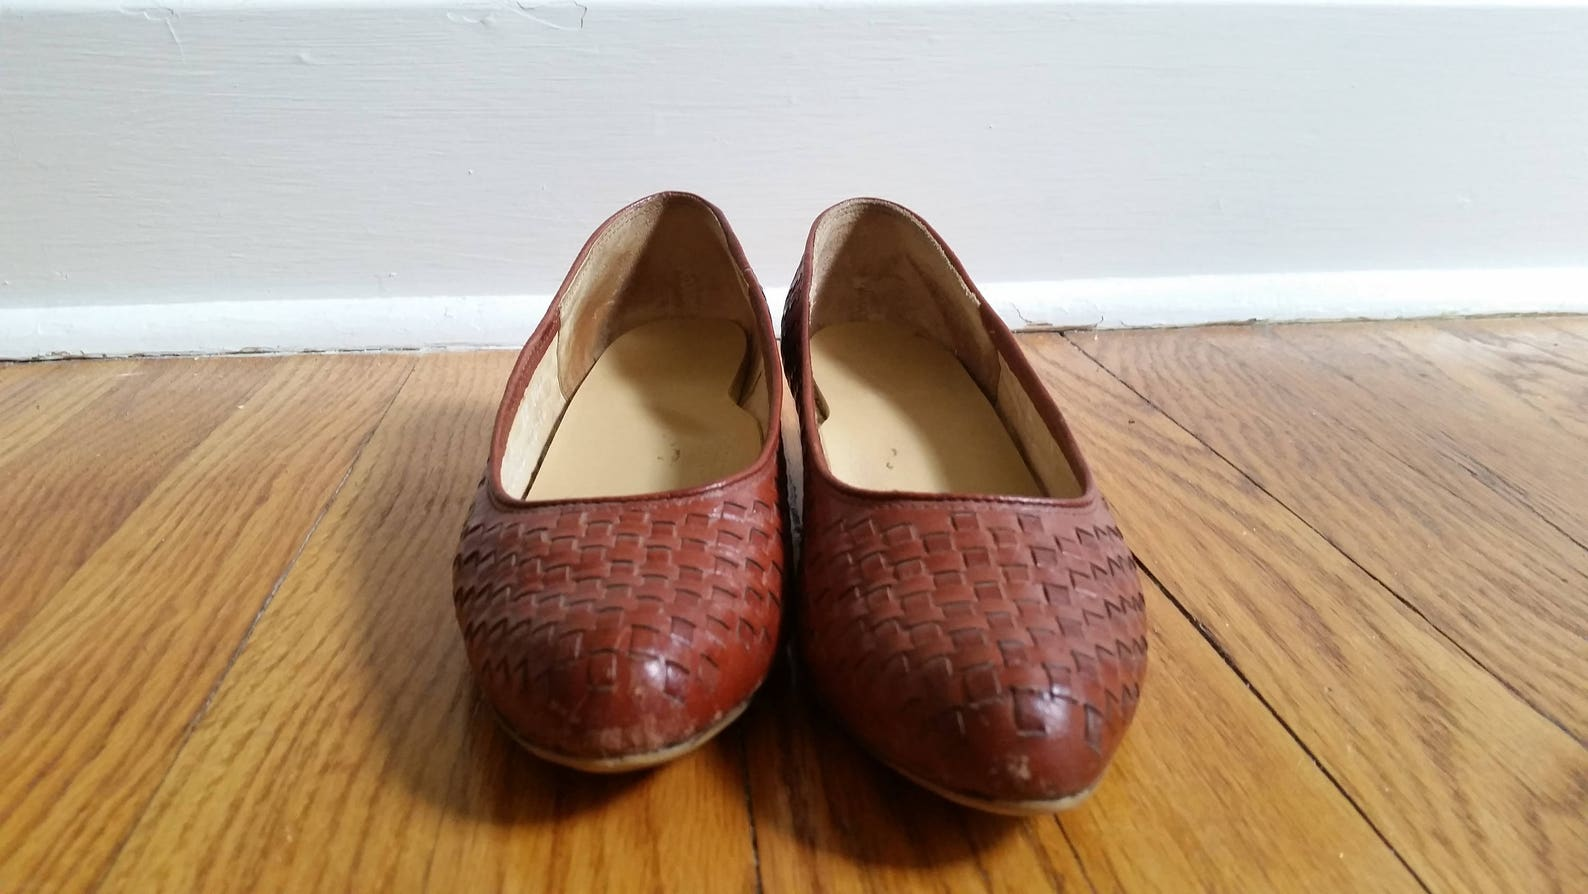 huaraches woven leather flats leather slip on vintage flats leather ballet flats 1980s brown woven kitten heel women's 7 1/2